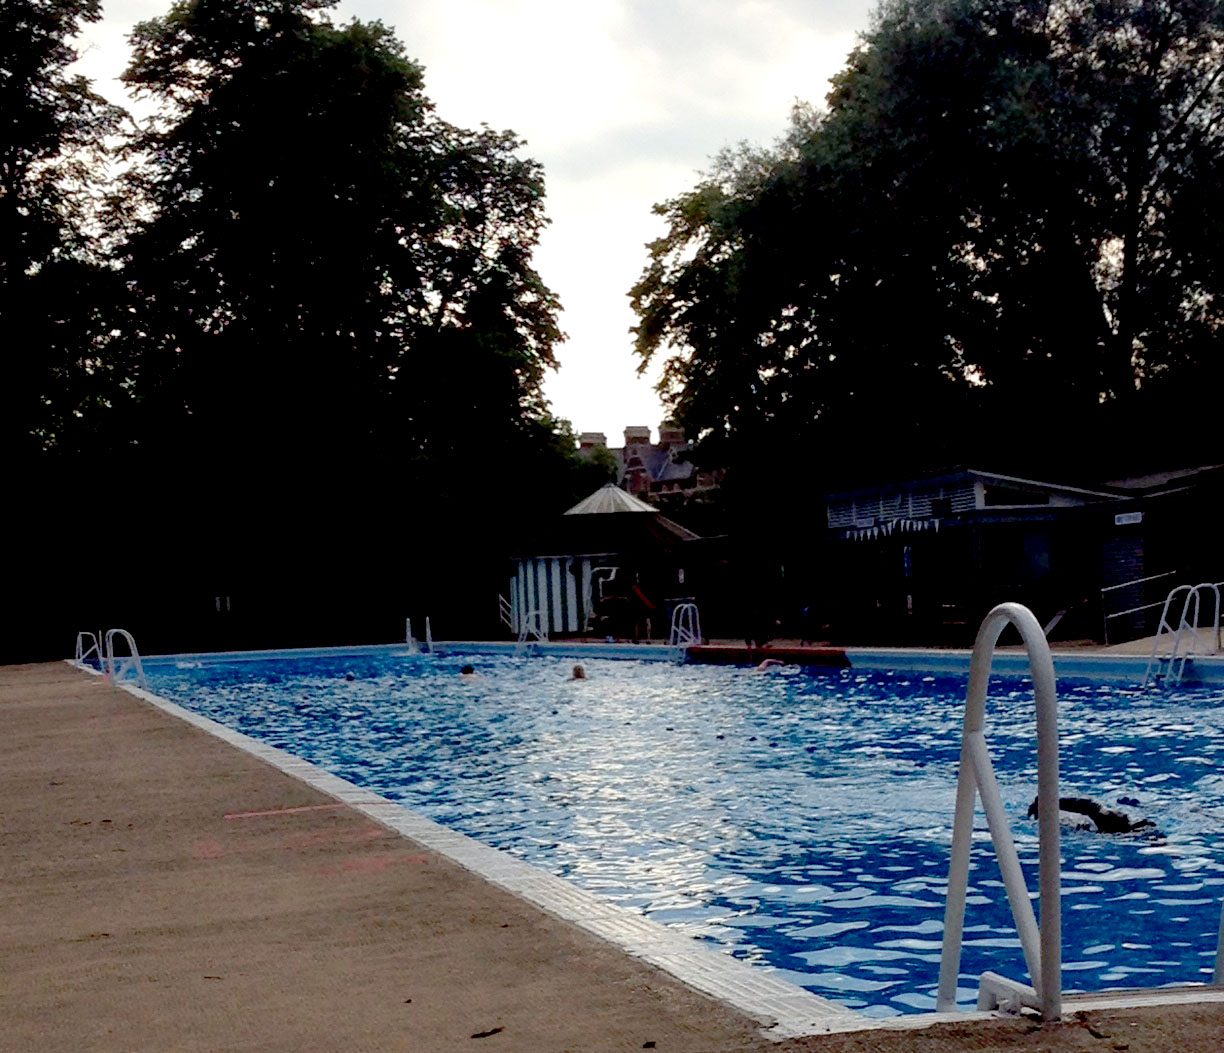 Making A Splash Top Uk Outdoor Pools: swimming pools in cambridge uk